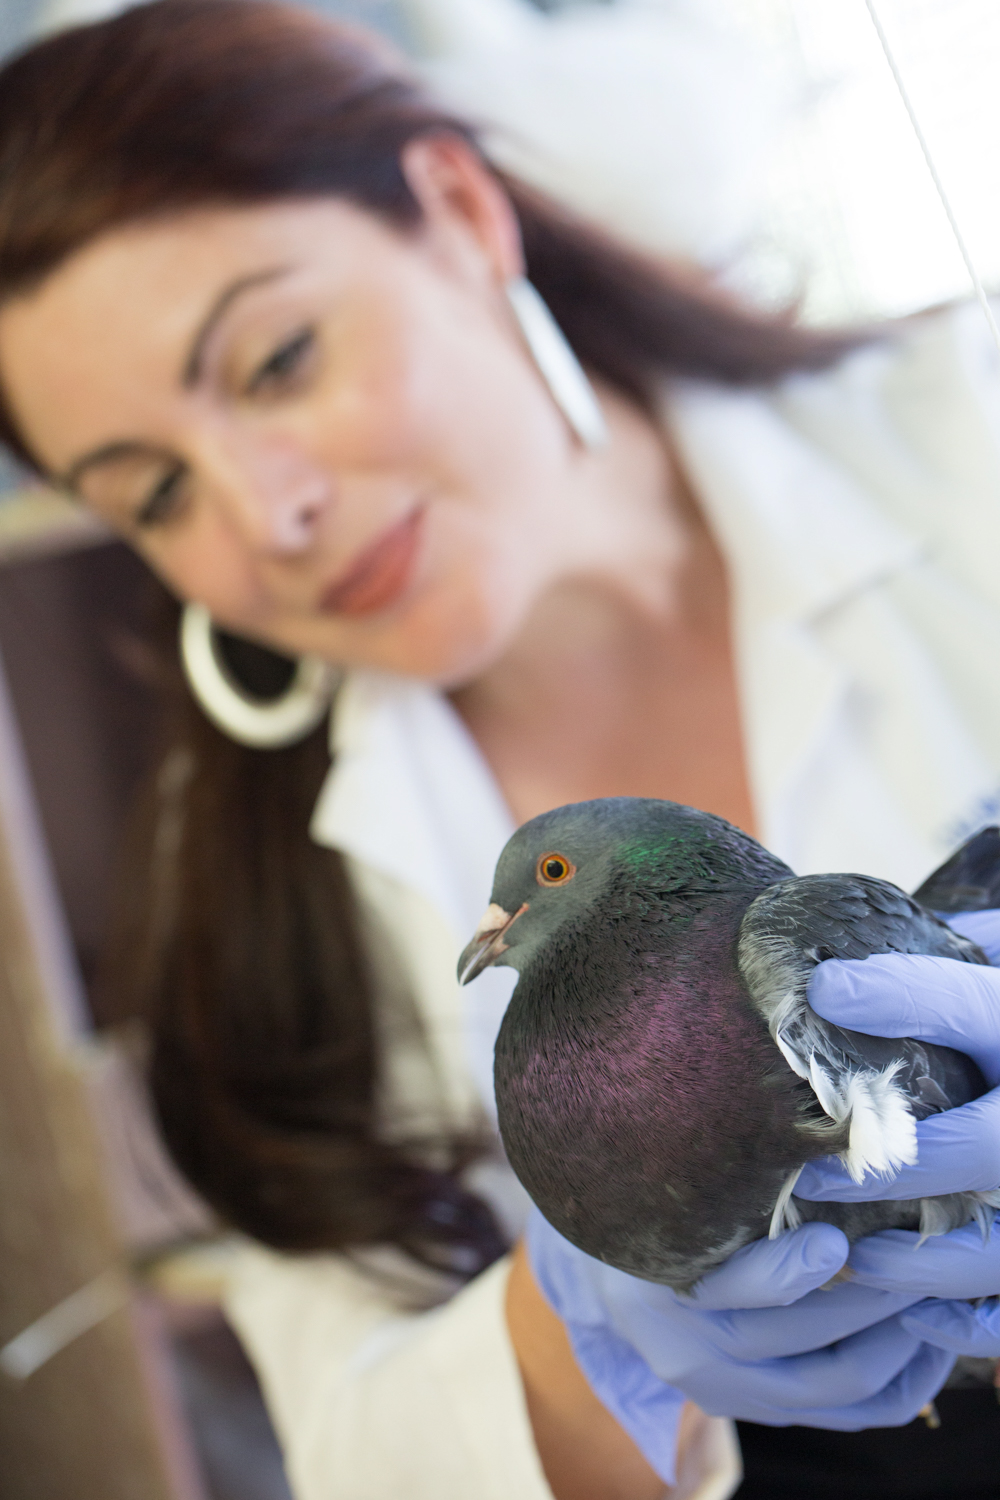 Assistant Professor Rebecca Calisi, Department of Neurobiology, Physiology and Behavior, analyzes toxins in pigeons to better understand how the birds can provide insight into environmental pollution levels in human populations. David Slipher/UC Davis